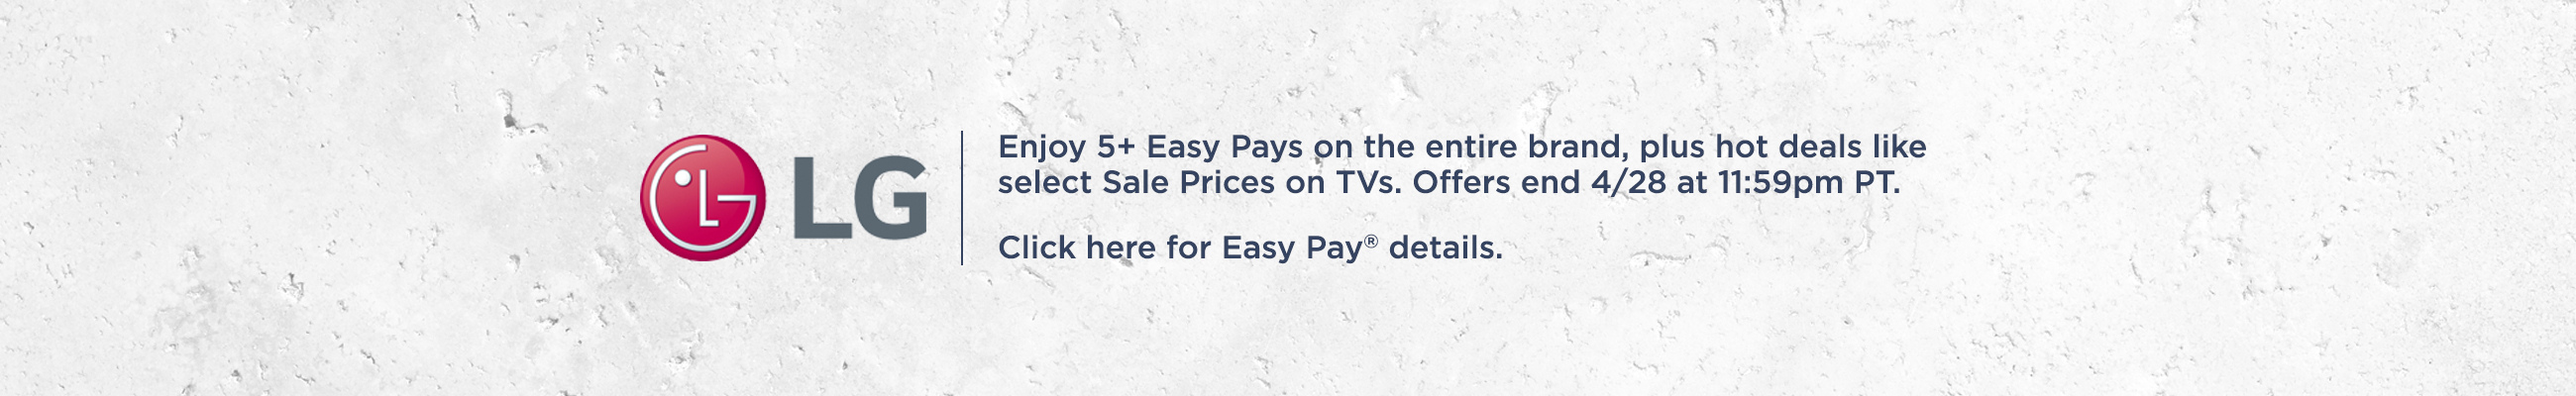 LG   Enjoy 5+ Easy Pays on the entire brand, plus hot deals like select Sale Prices on TVs. Offers end 4/28 at 11:59pm PT.  Click here for Easy Pay® details.